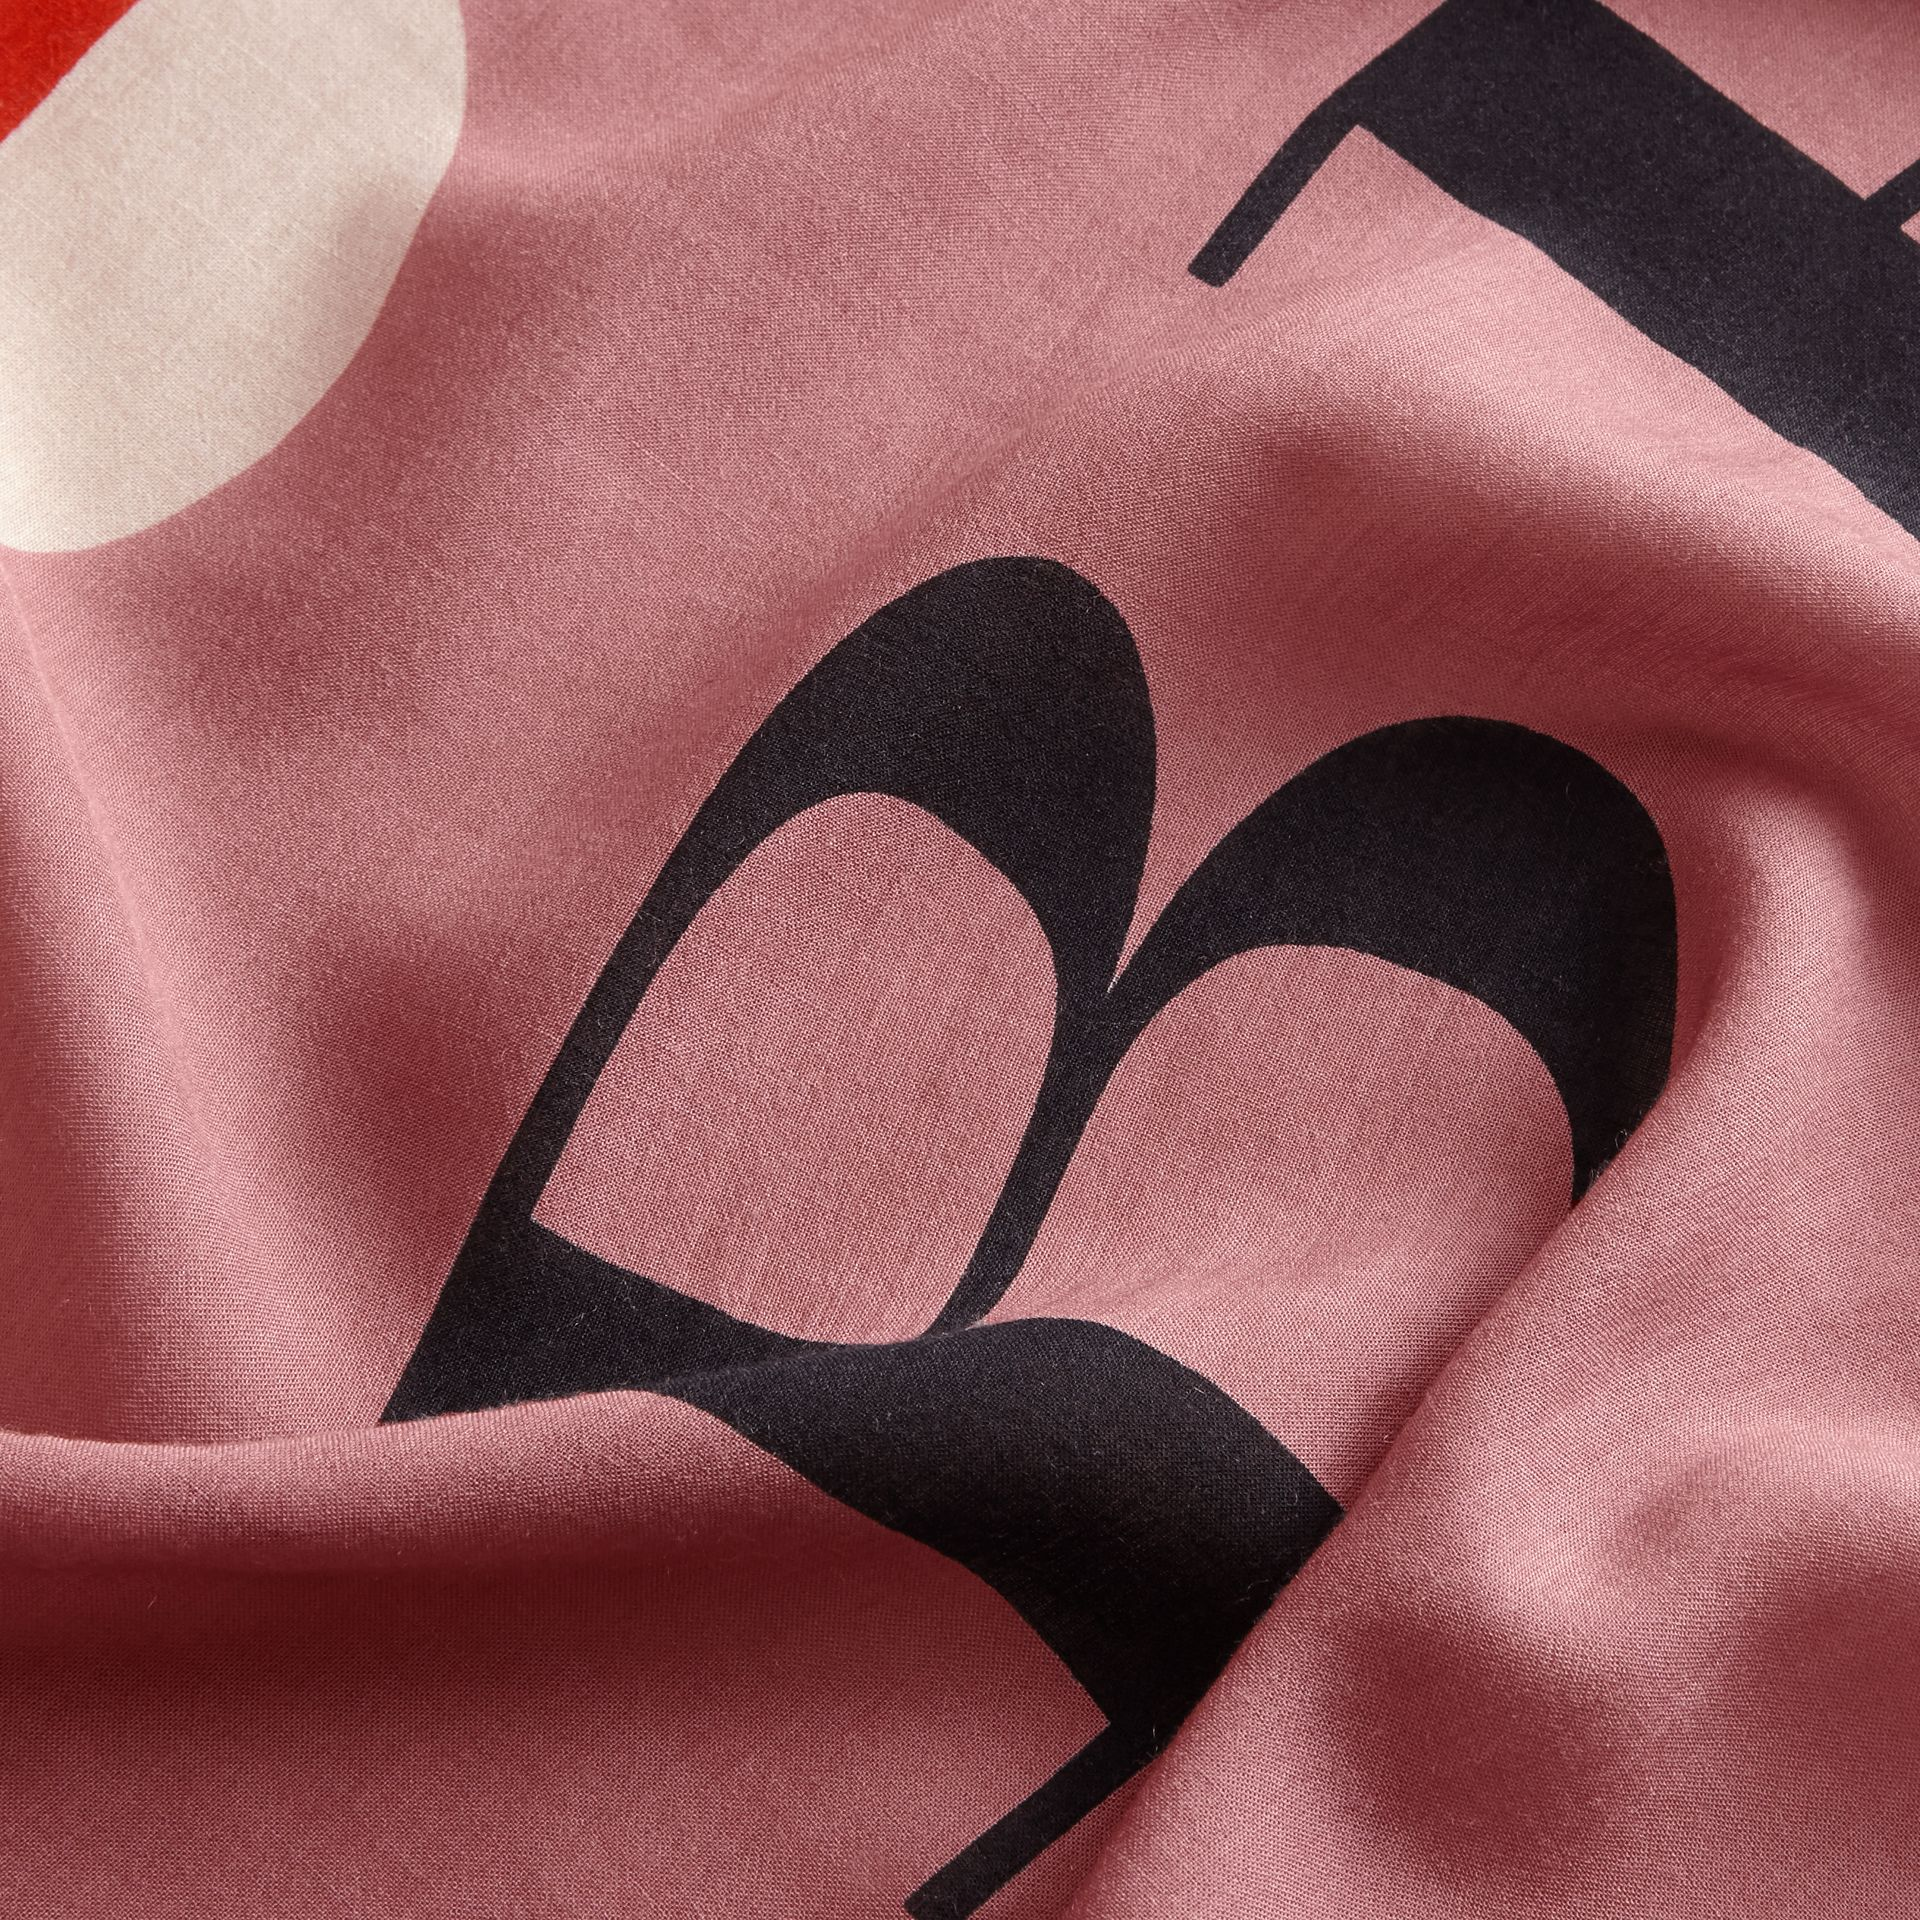 Scallop and Stripe Print Modal Wool Scarf in Dusty Pink - Women | Burberry Australia - gallery image 2